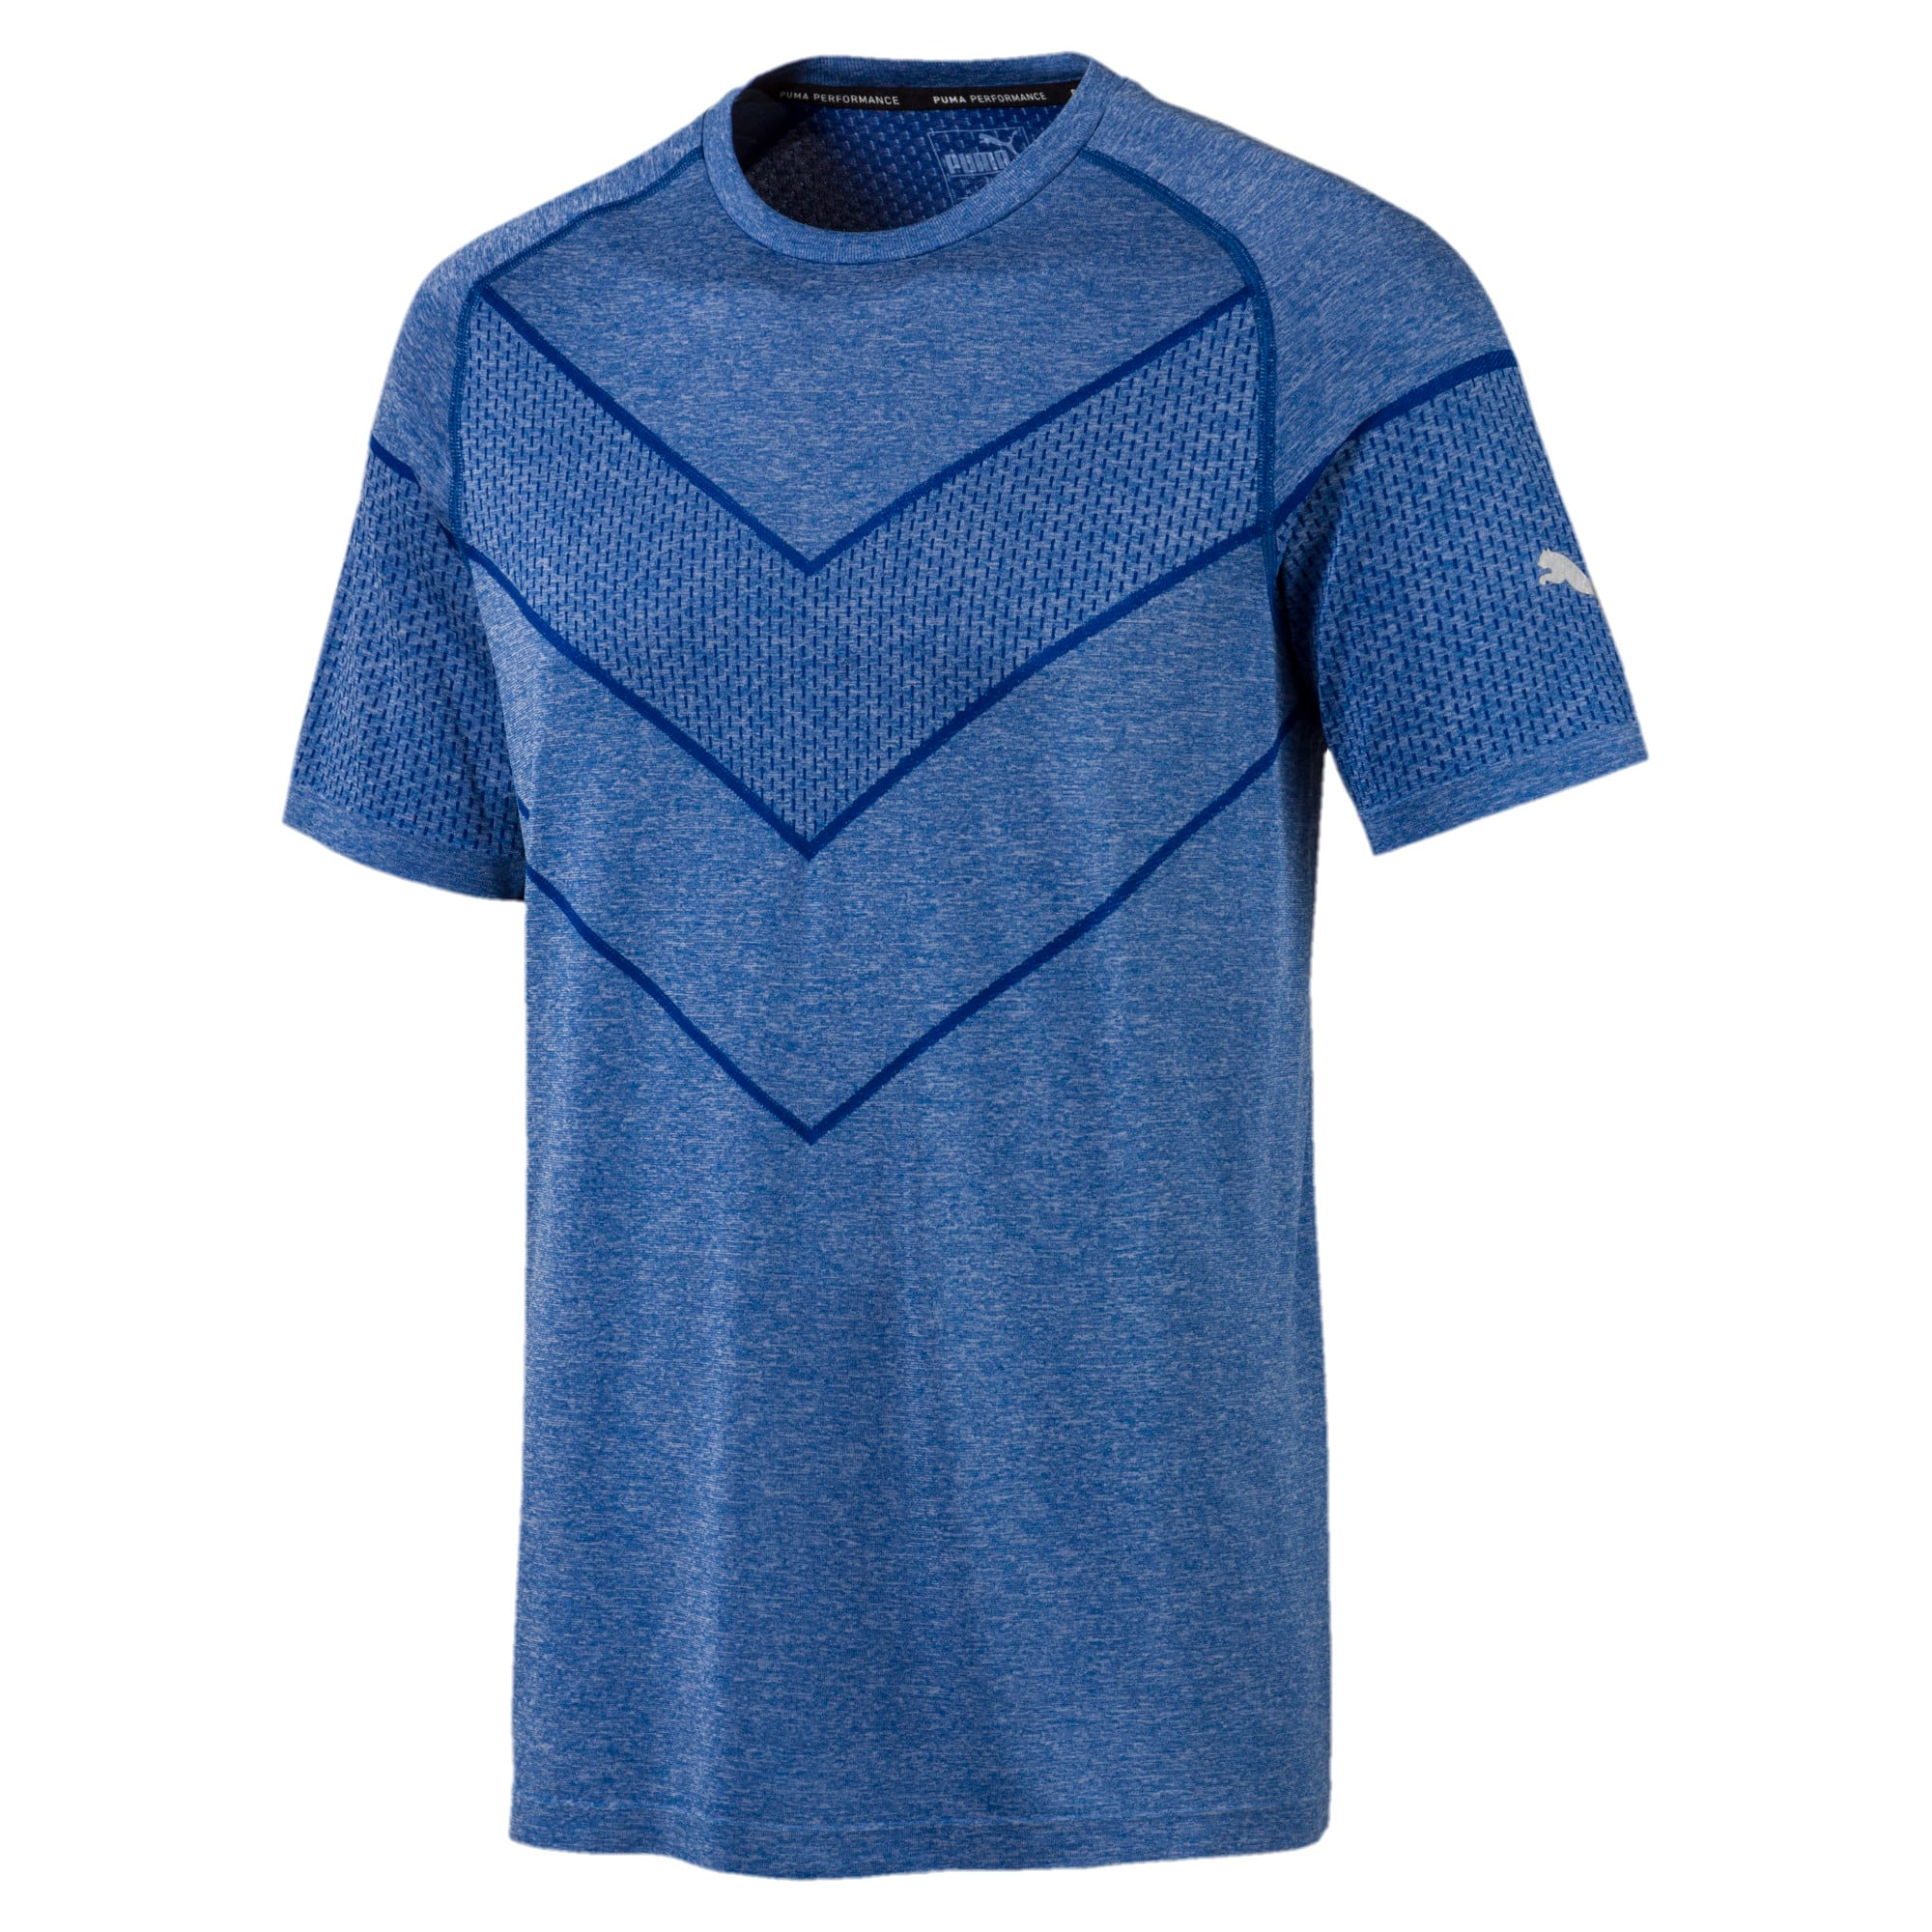 Reactive evoKNIT Men's Tee, Galaxy Blue Heather, large